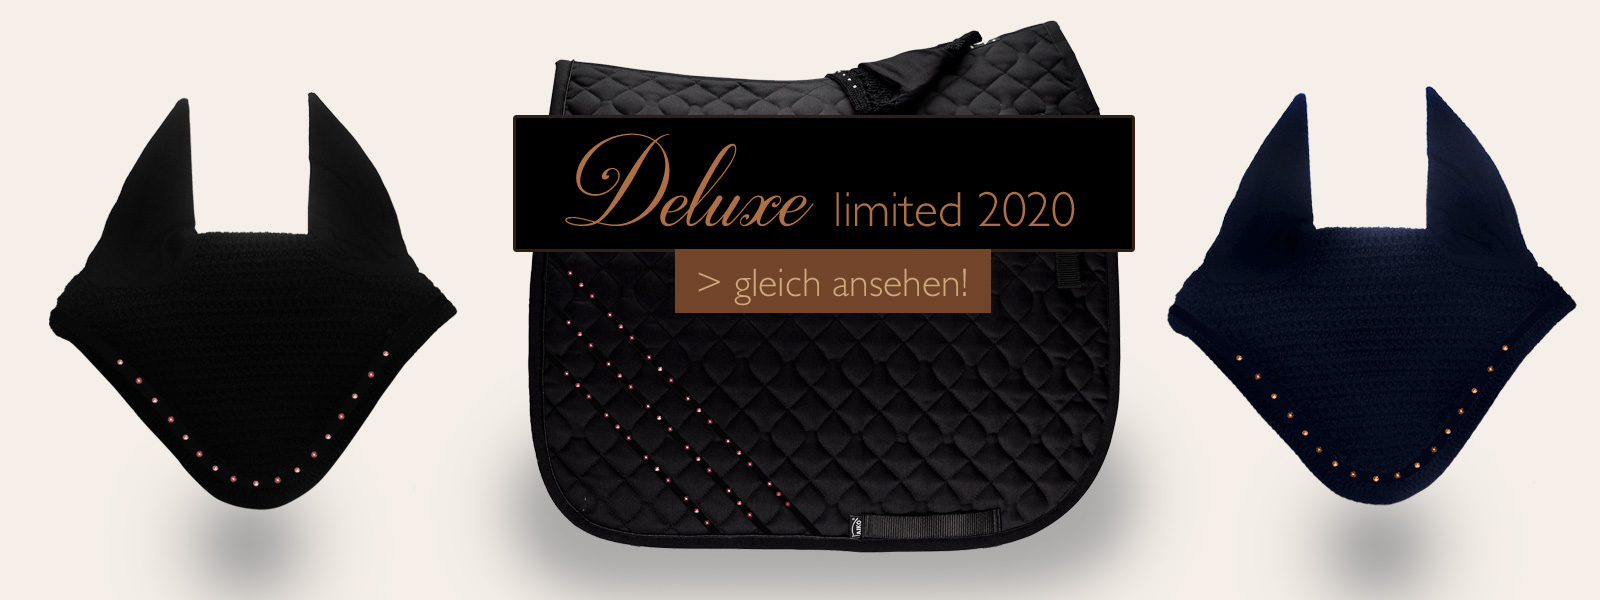 Deluxe Limited Schabracken